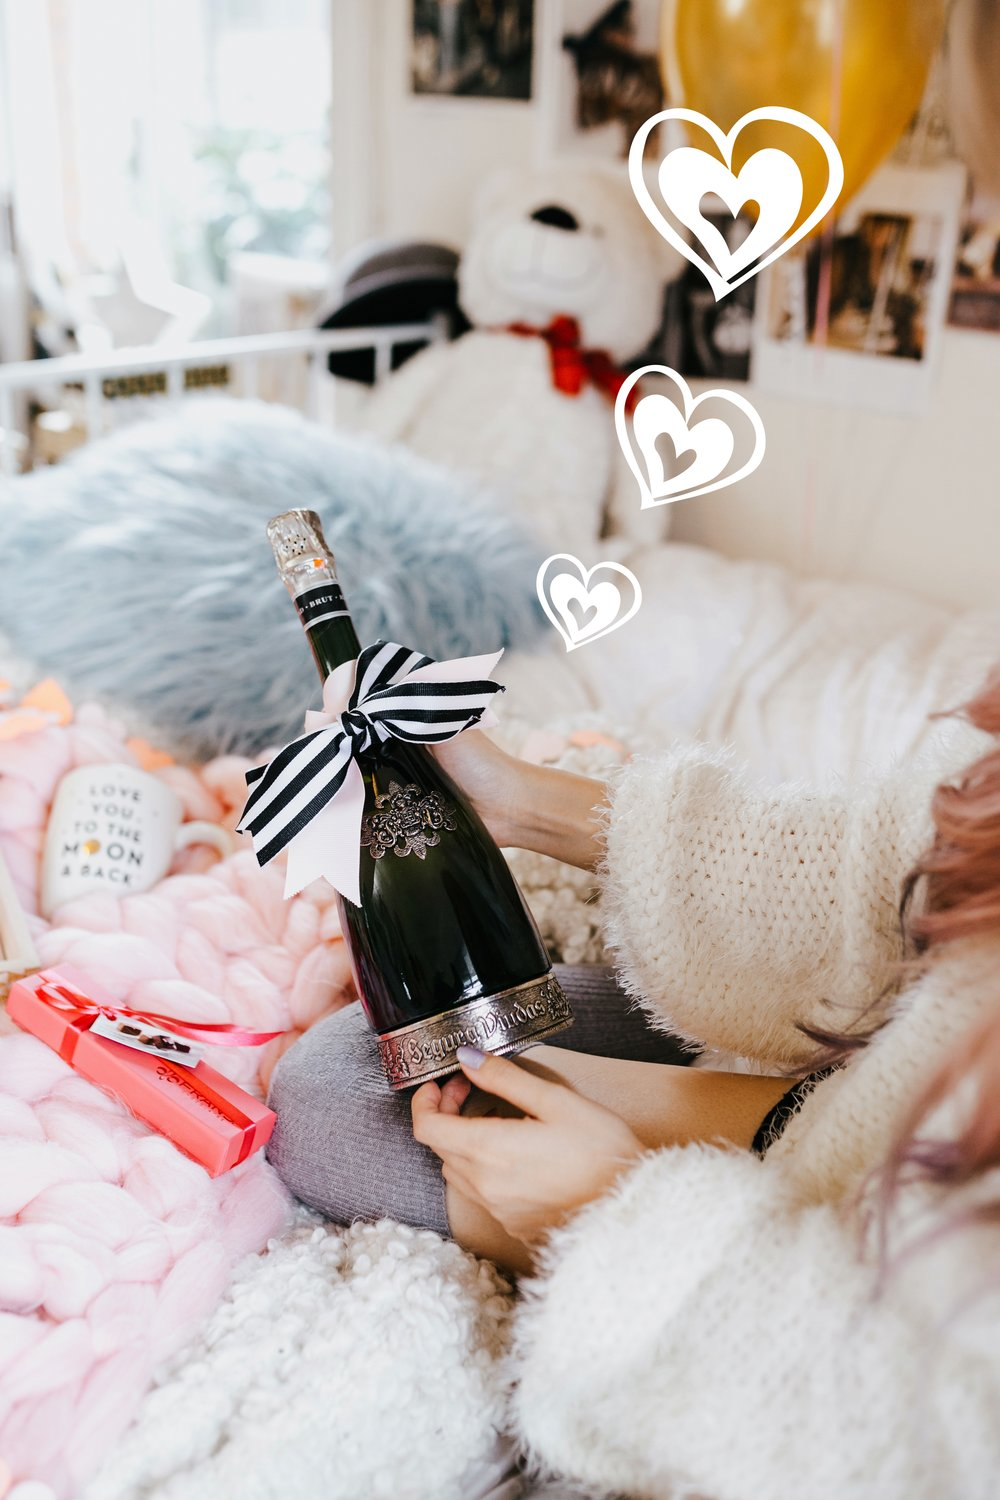 Segura Viudas Heredad Brut Reserva-I love you to the moon & back-heart chocolate-heart mini garland-Aika Yokoyama-AIkas Love Closet-heart ballons-special gift-galantine's day-valentine's day-sparkling wine-small room-chunky blanket-pink hair-fur pillow-chunky throw-japanese-lifestyle and style blogger-inspiration-seattle 11